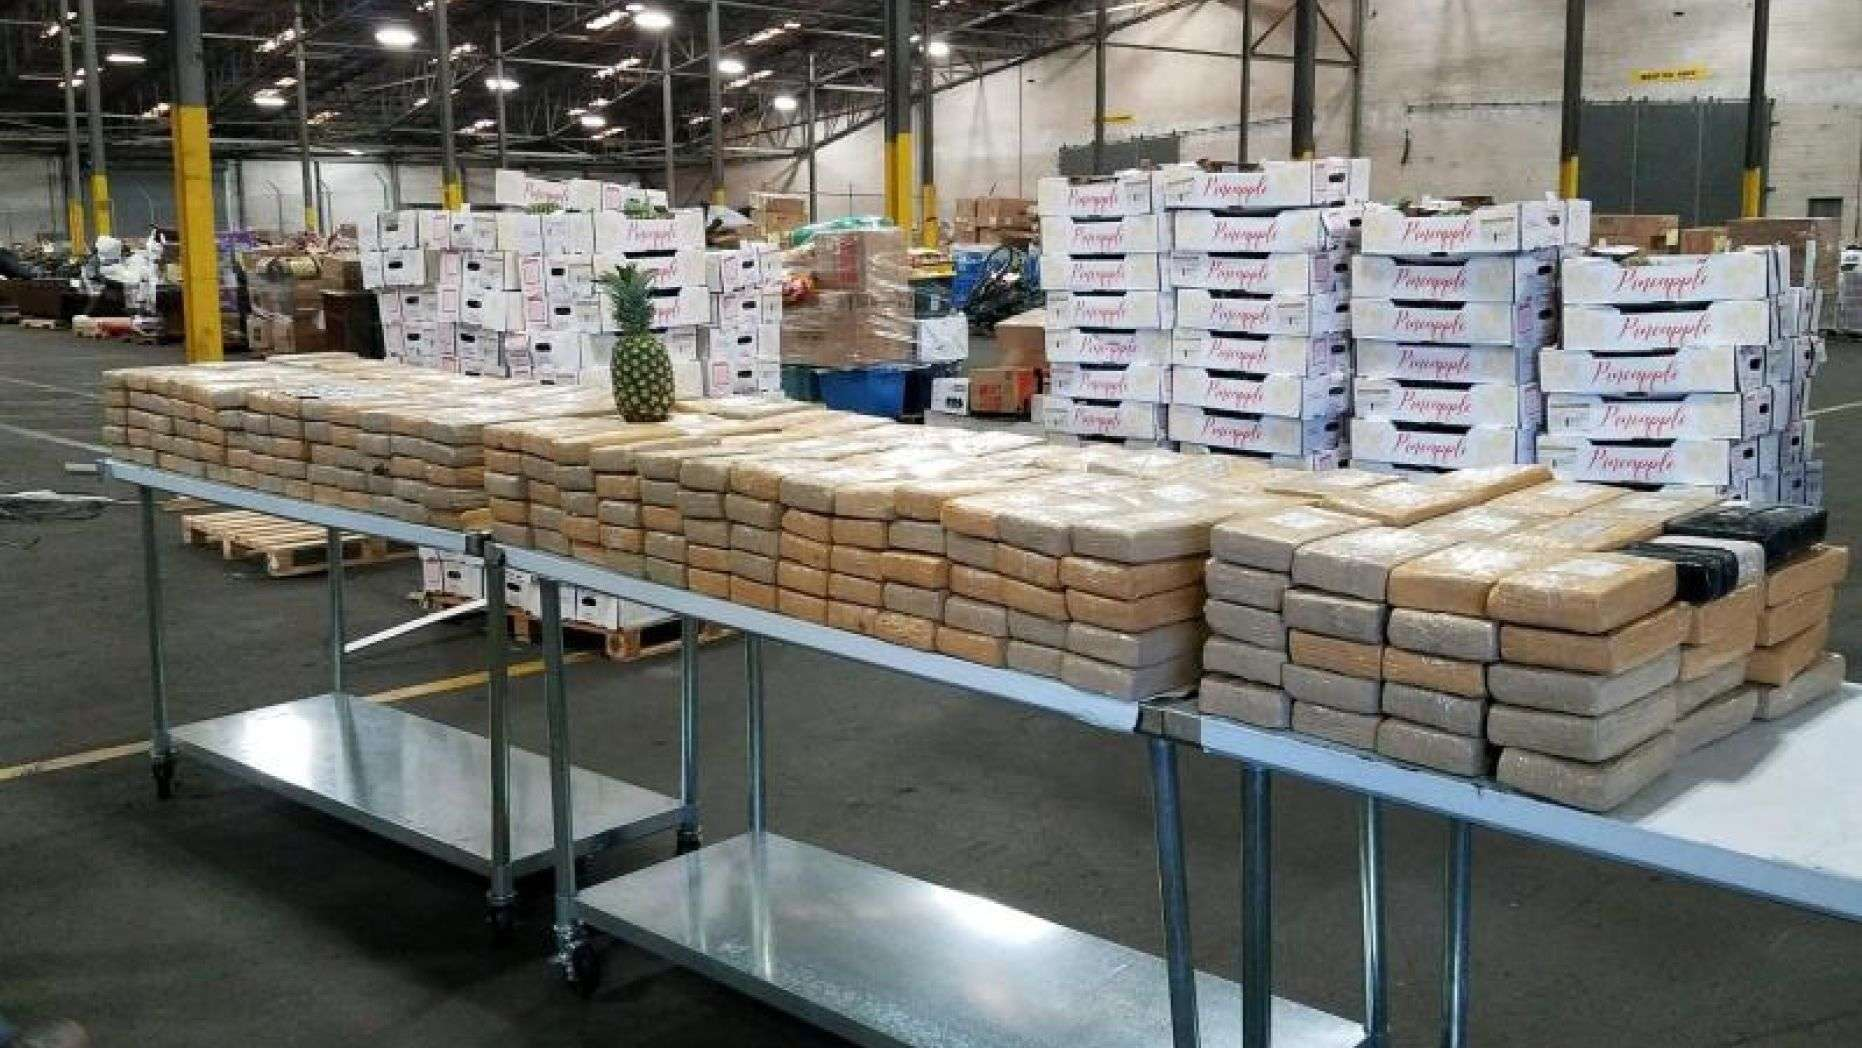 CBP seizes more than $19M of cocaine found inside a pineapple shipment: officials